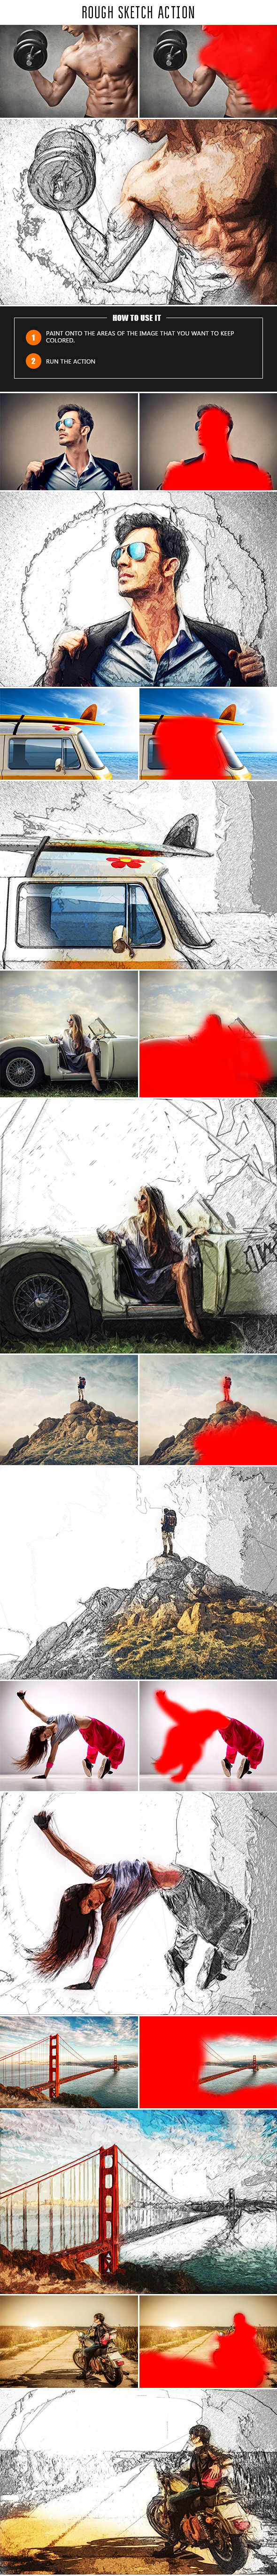 GraphicRiver Rough Sketch Action 10507333